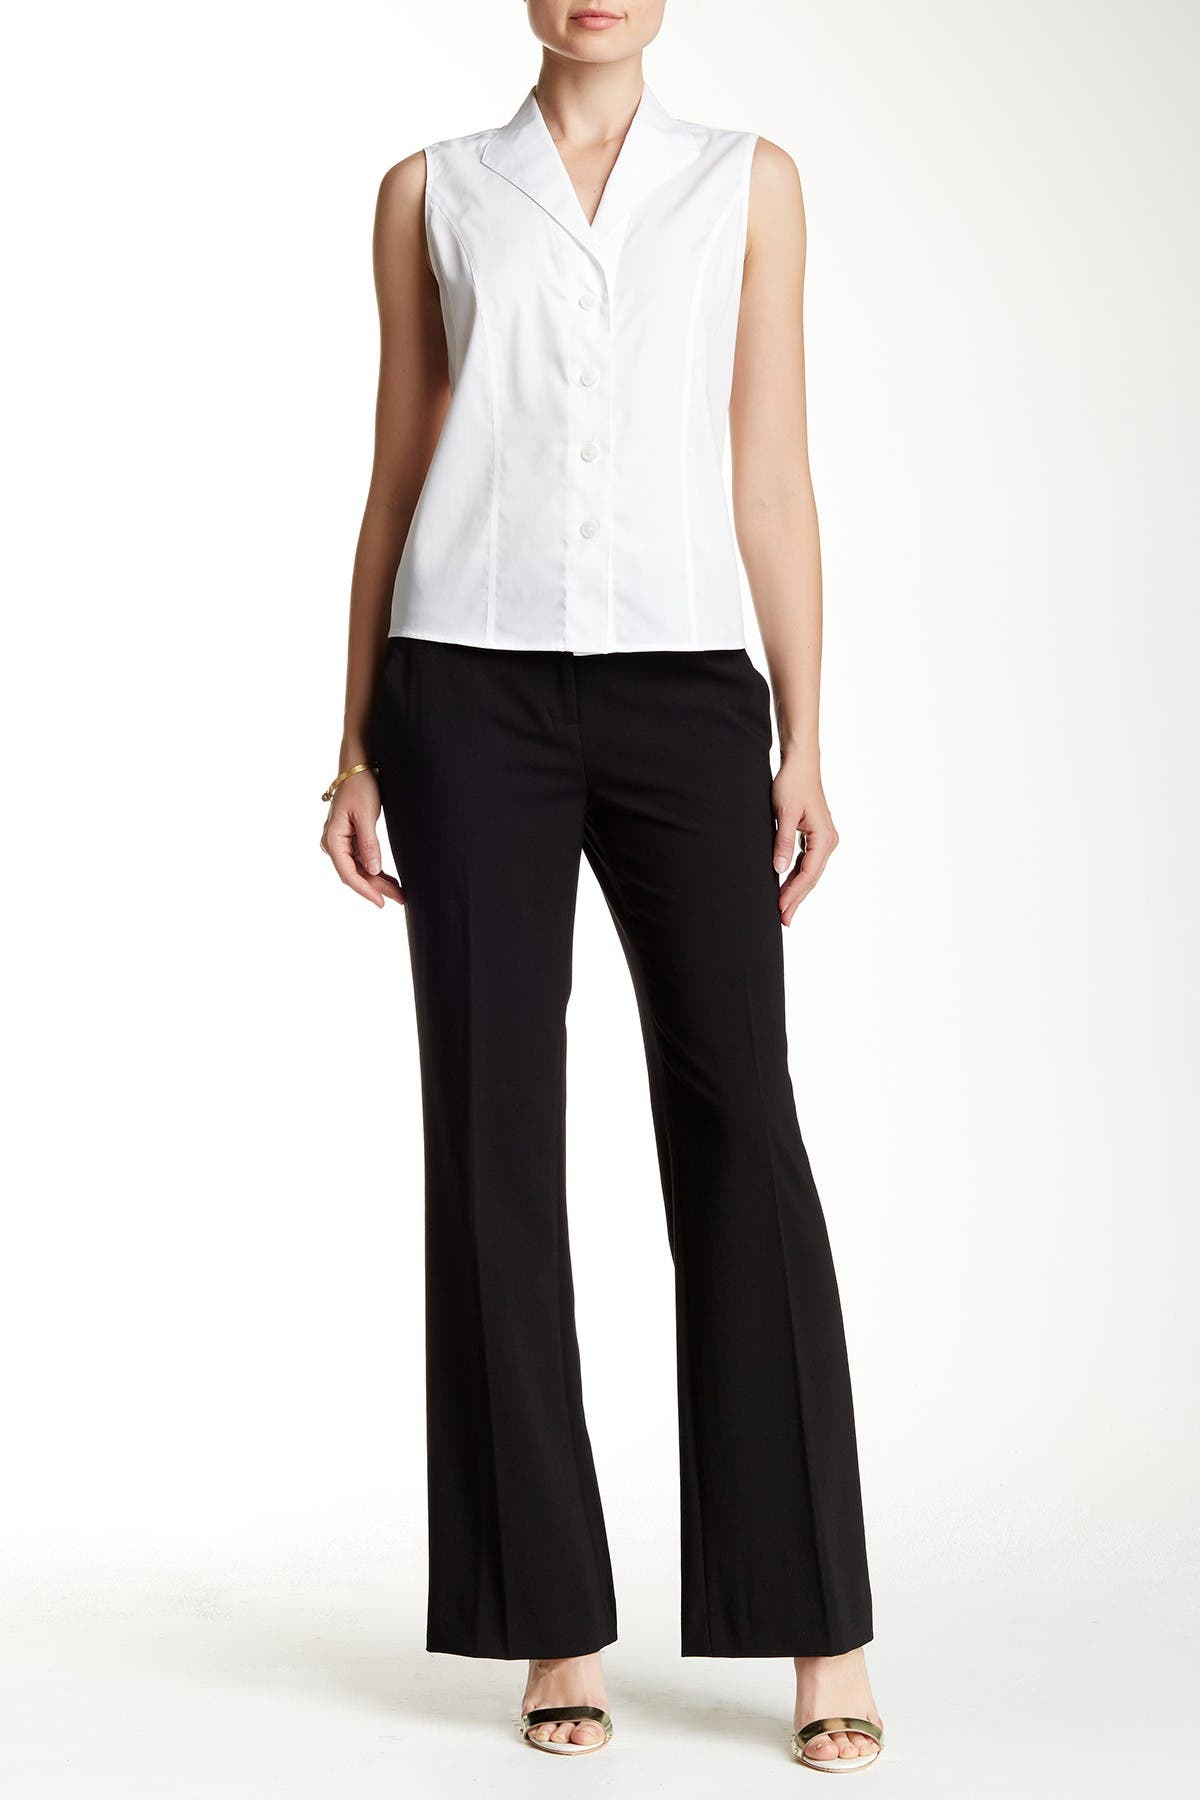 Image of Calvin Klein Classic Fit Pants